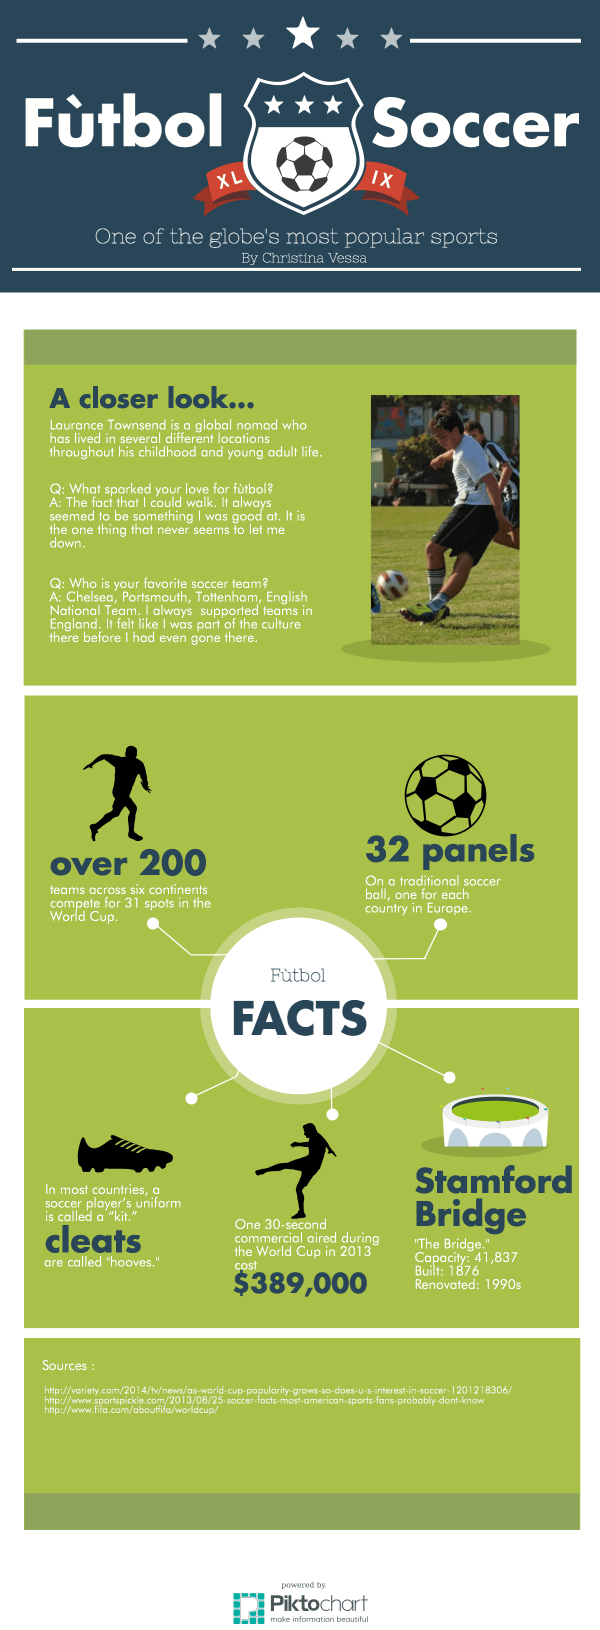 VISUAL: Fun facts about fútbol